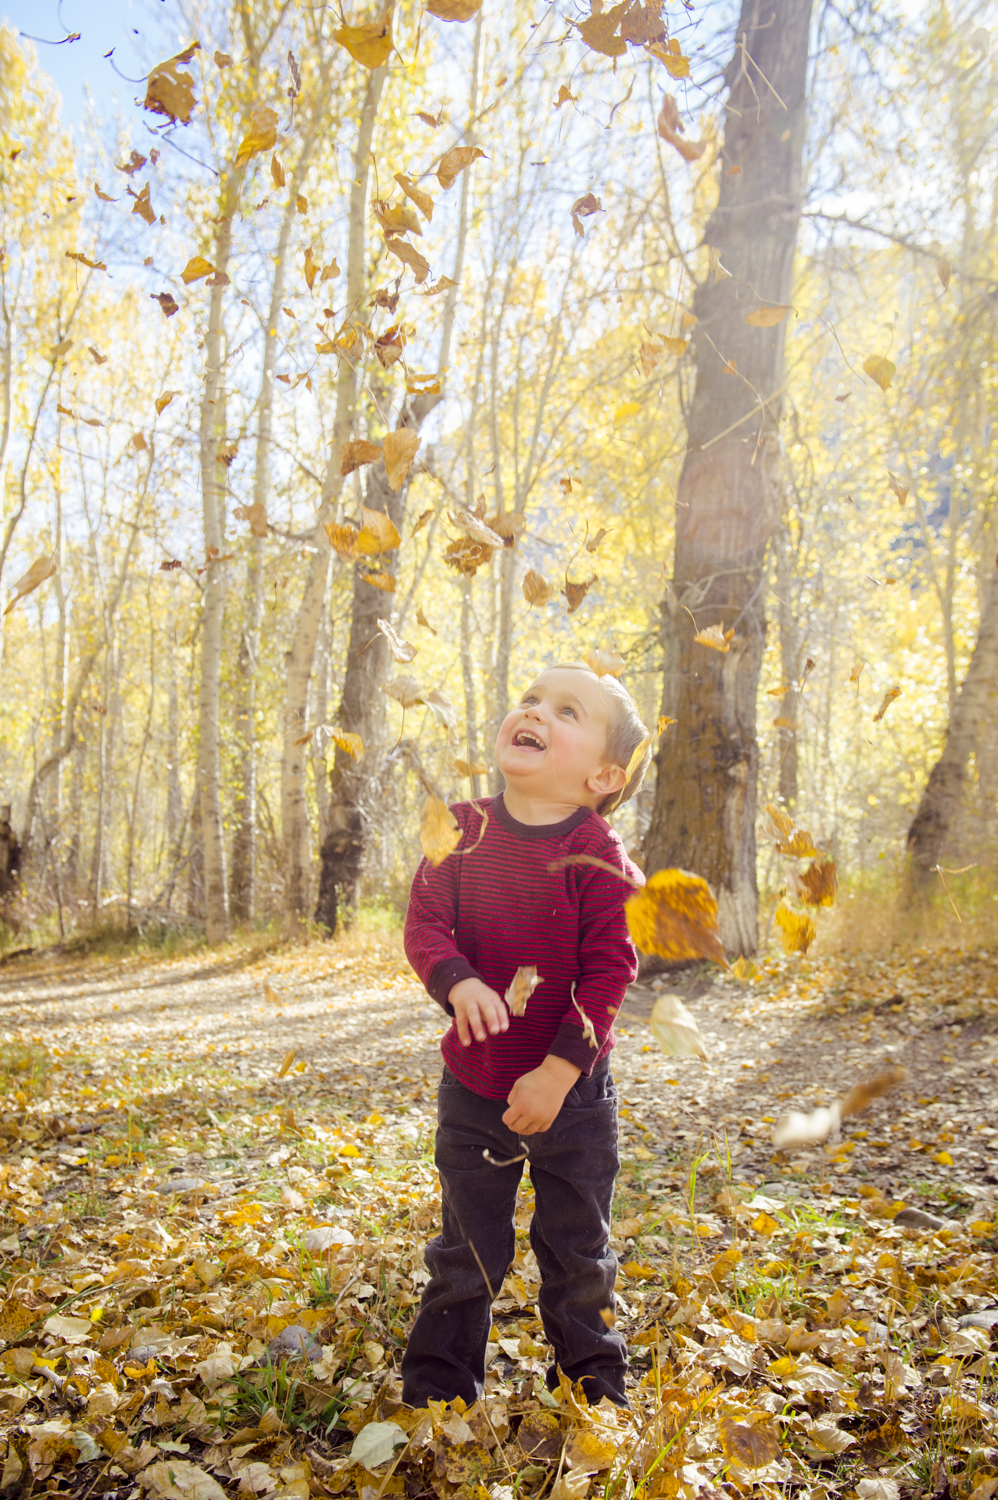 fall_lifestyle_family_leaves_candid_playing-014.jpg